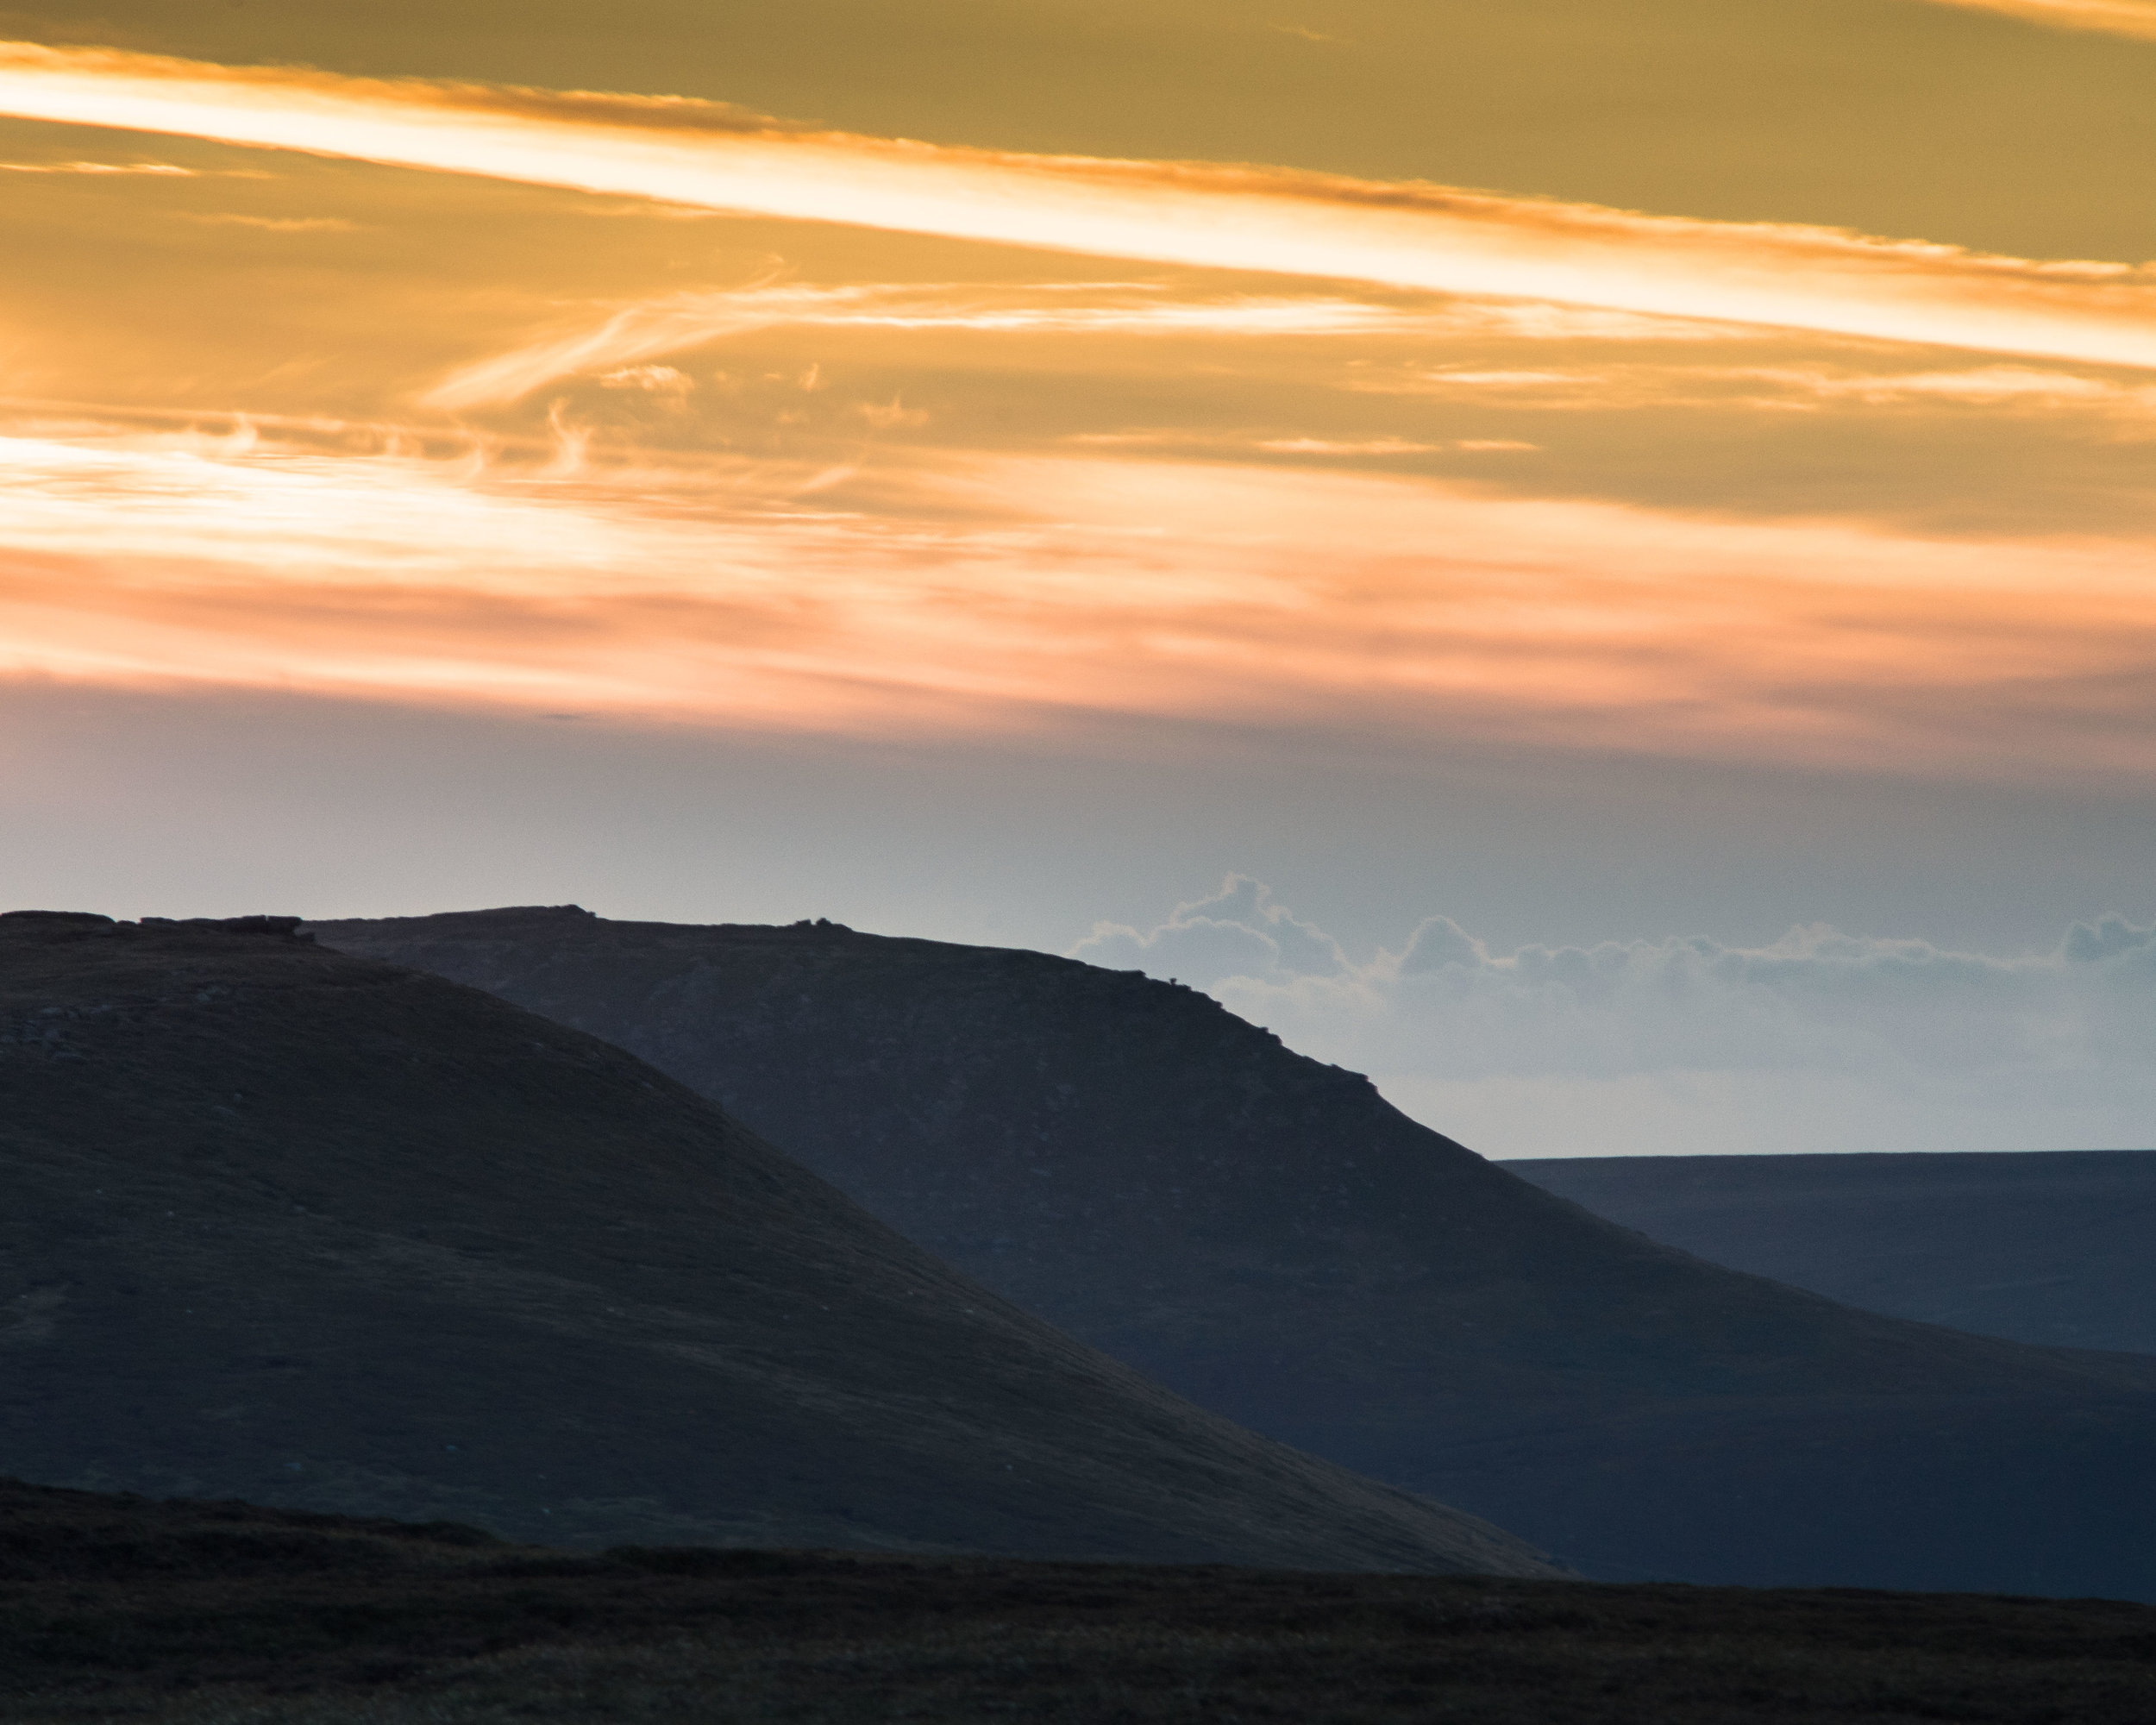 It wasn't the sunset we had hoped for in Derbyshire on Blackden edge but at least it gave me chance to see the layering effect of the telephoto lens. Shot at 190mm.